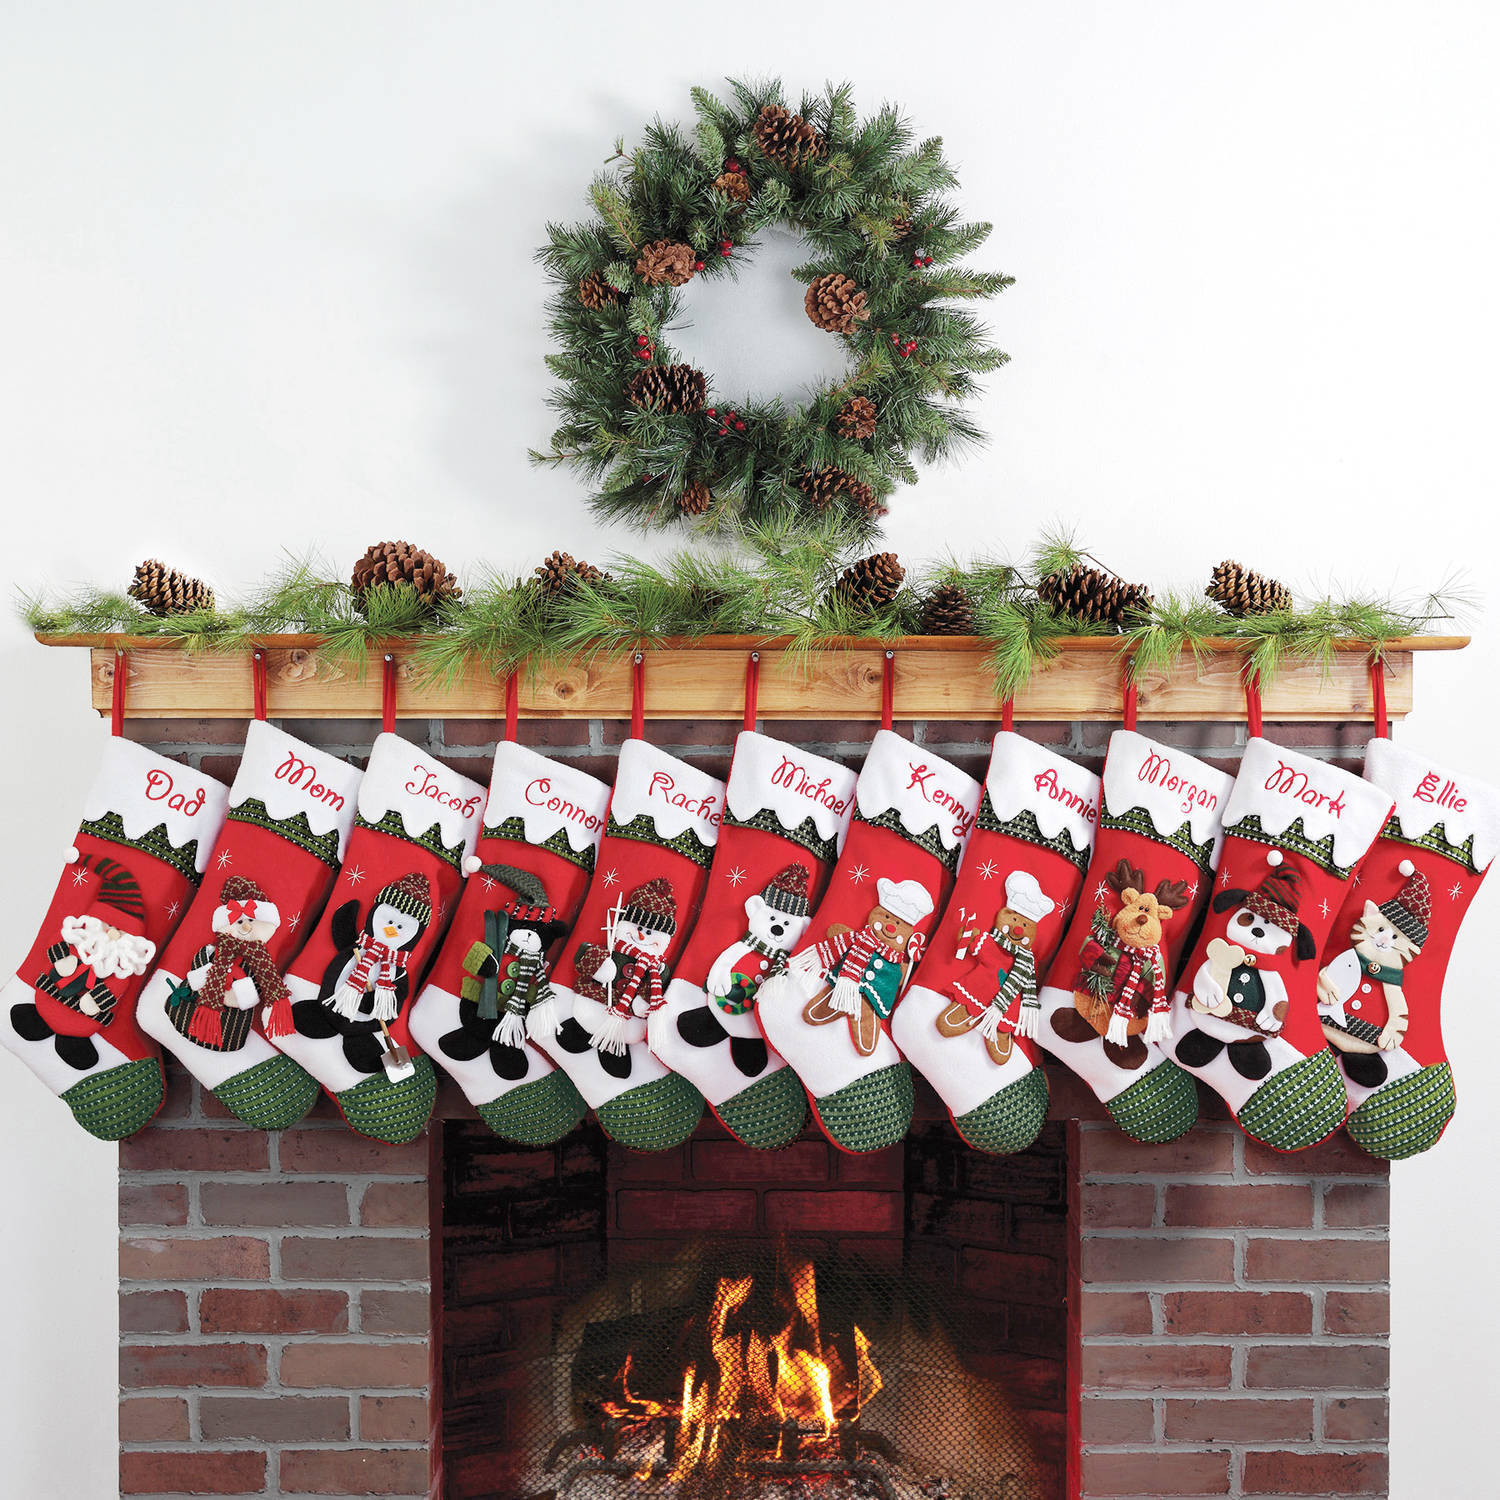 Personalized Snow Cap Christmas Stocking, Available in 11 Designs